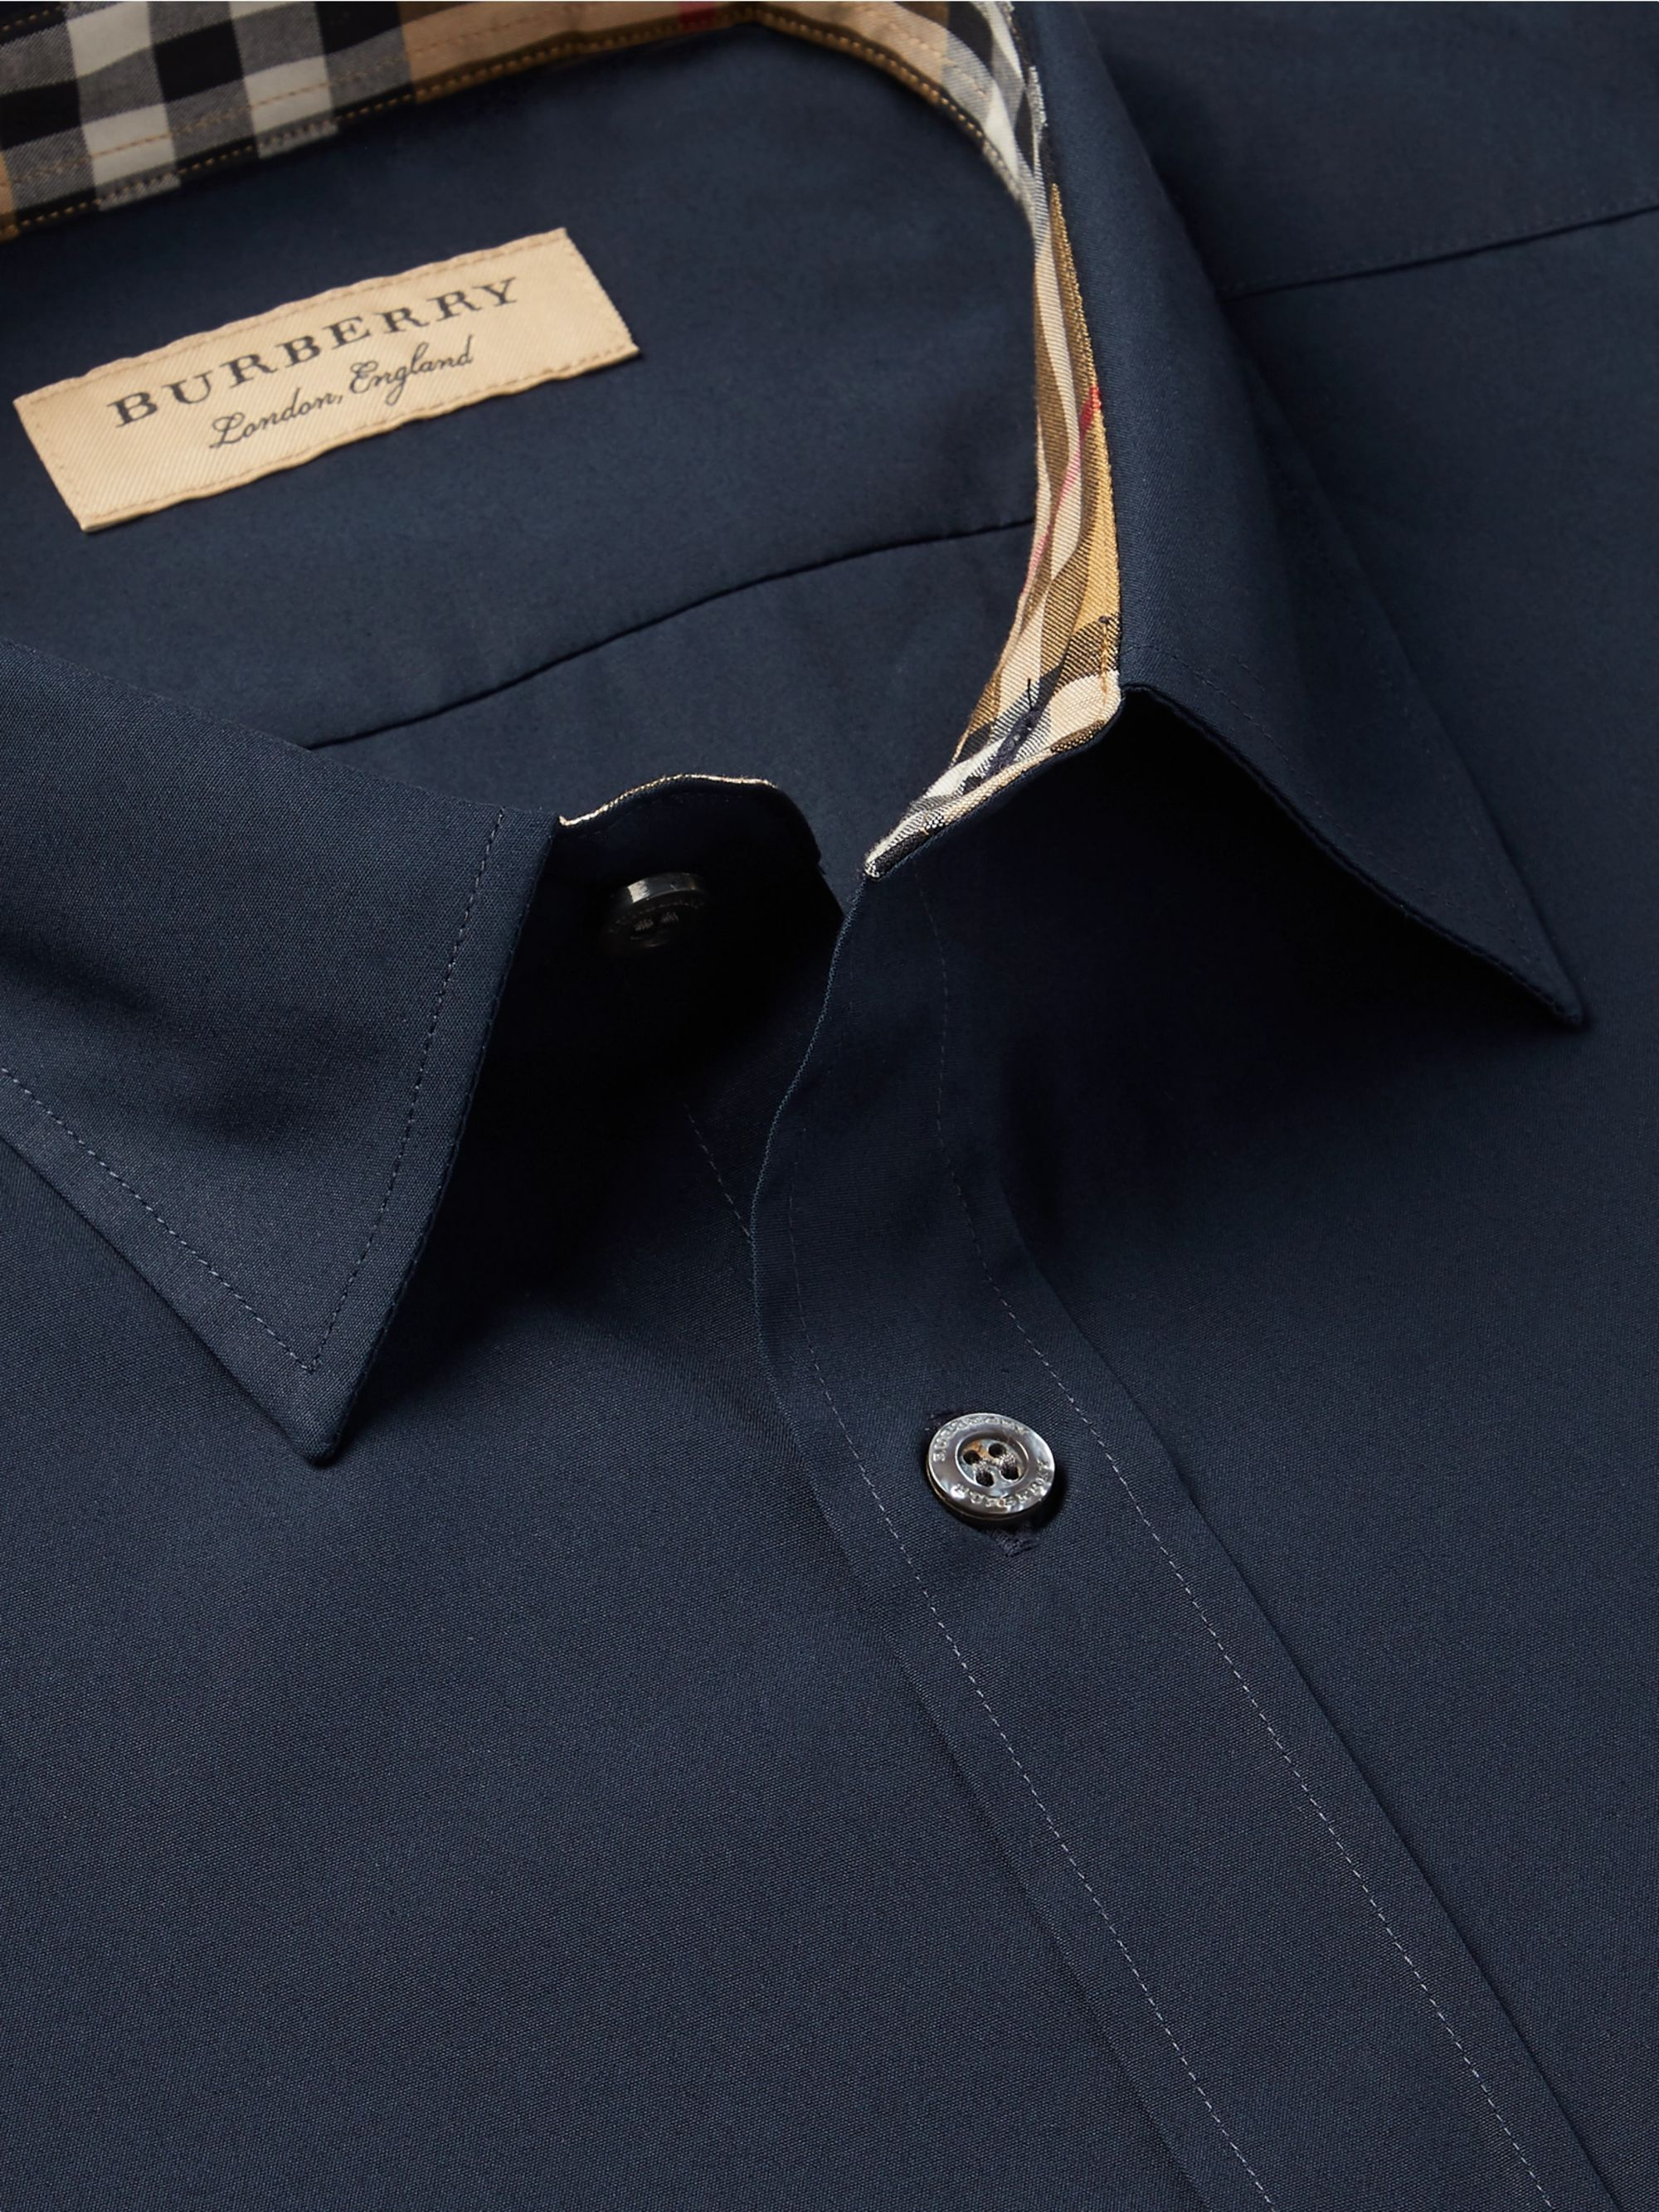 Burberry Cotton-Blend Poplin Shirt